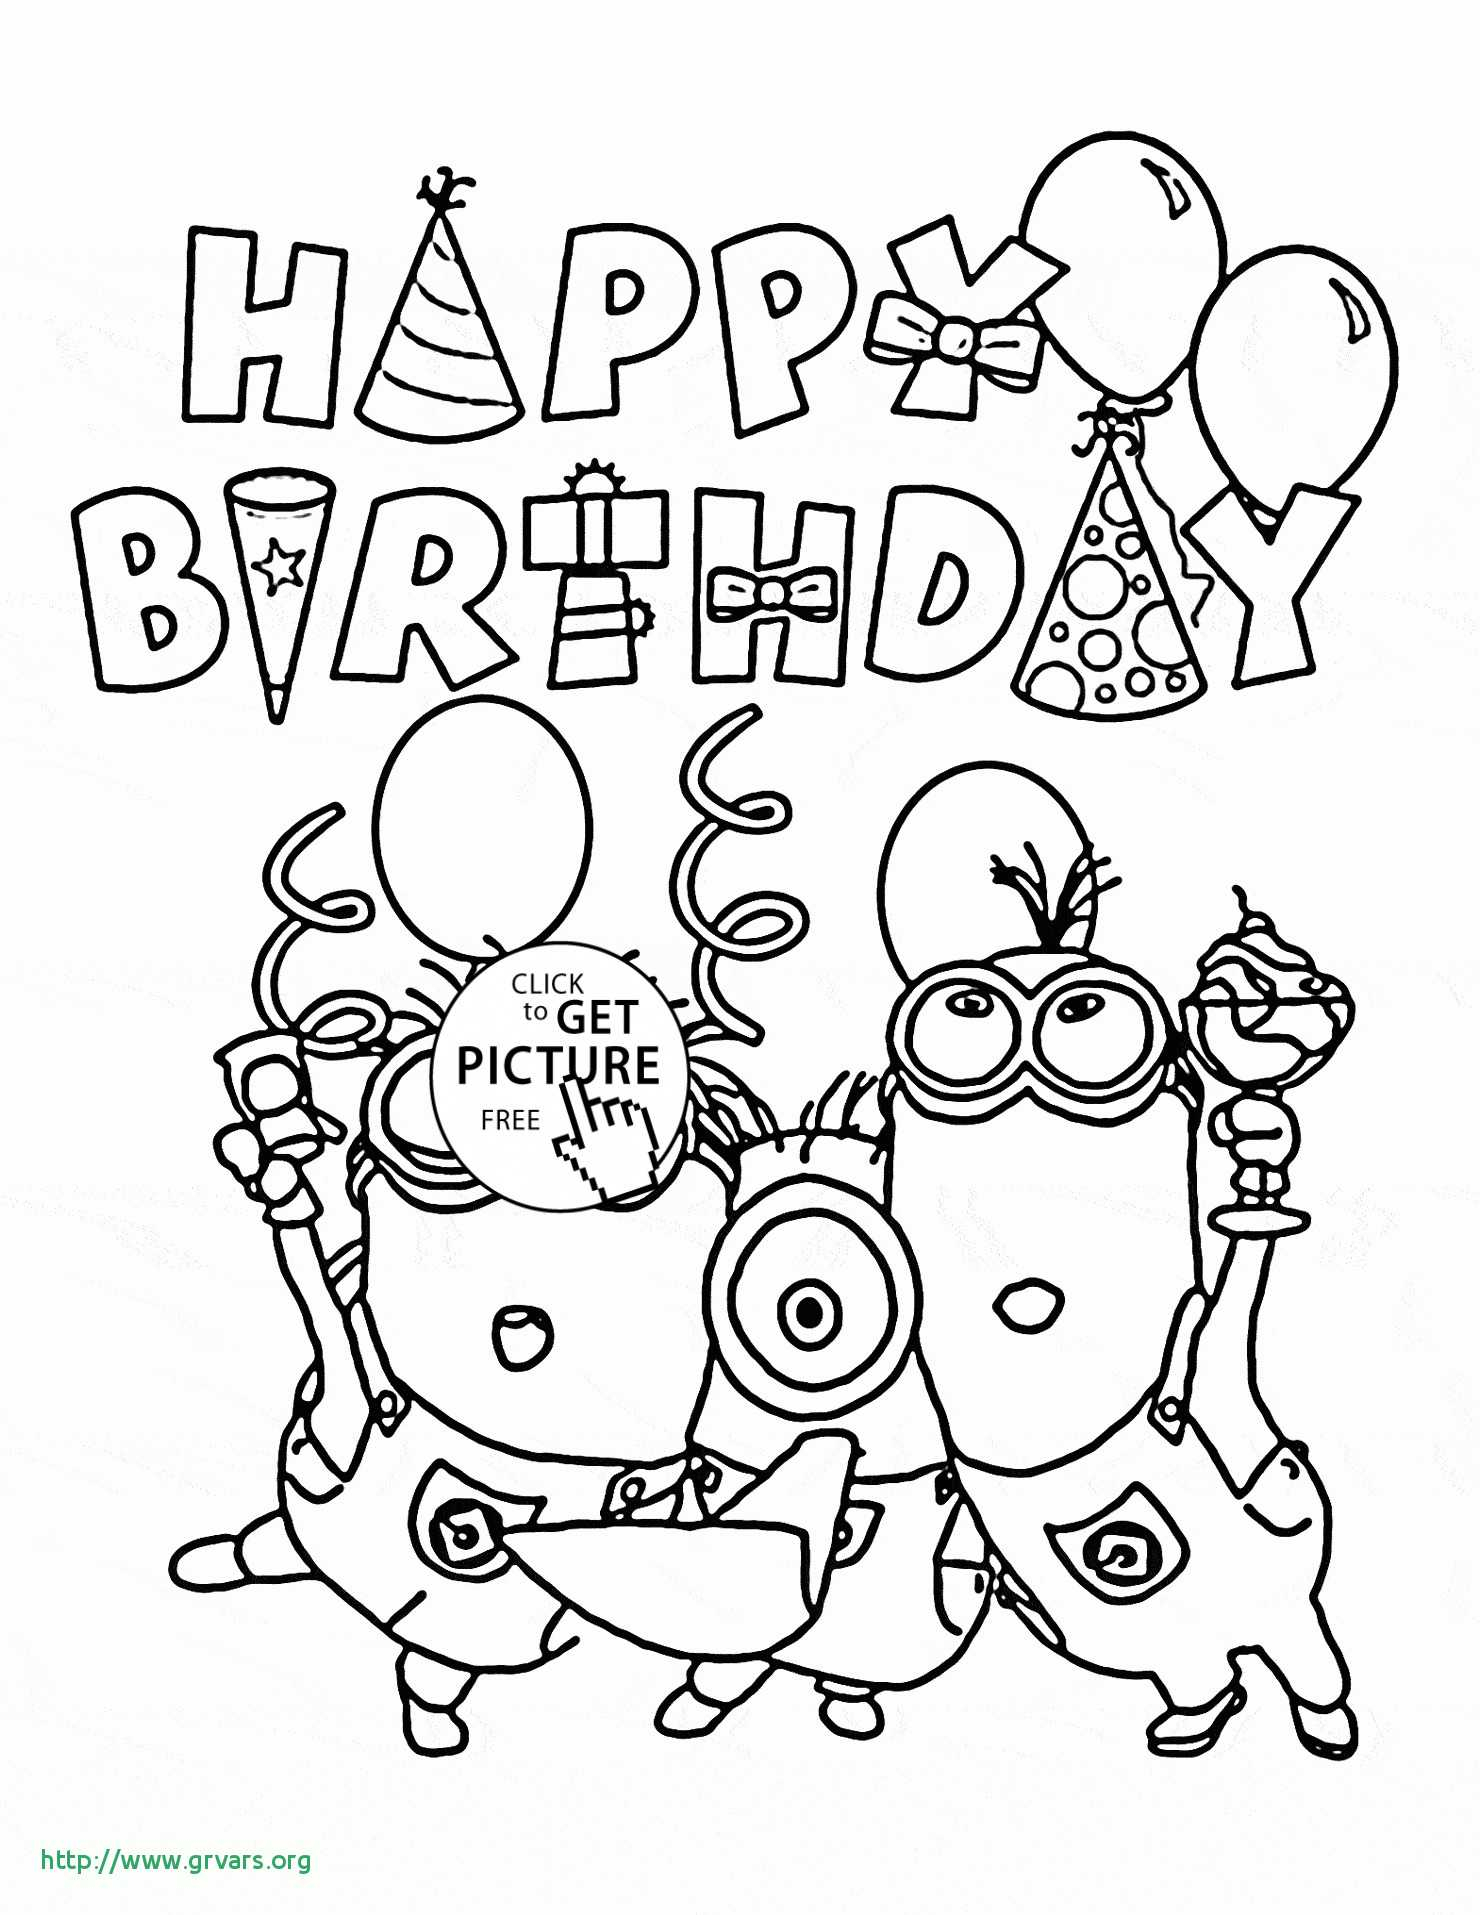 Happy Birthday Card Coloring Pages  Download 9s - Free Download